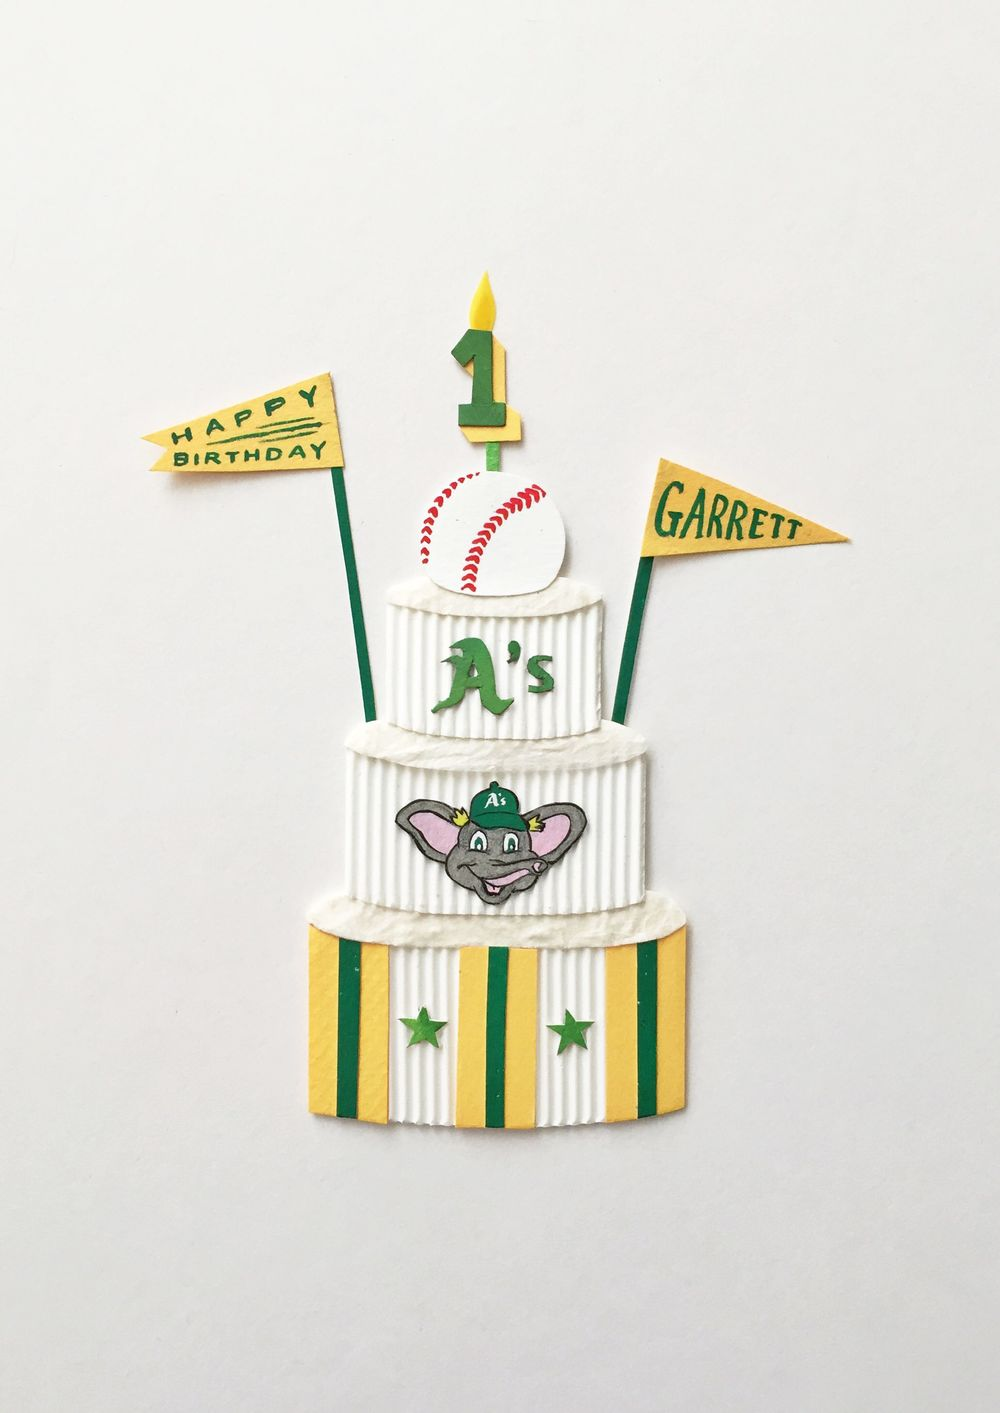 Some one year olds really do have the best birthdays, don't they? Garrett's about to be a lucky little man. Here's a custom invitation for a client who's planning an Oakland A's-themed party for her son's 1st birthday! ⚾️